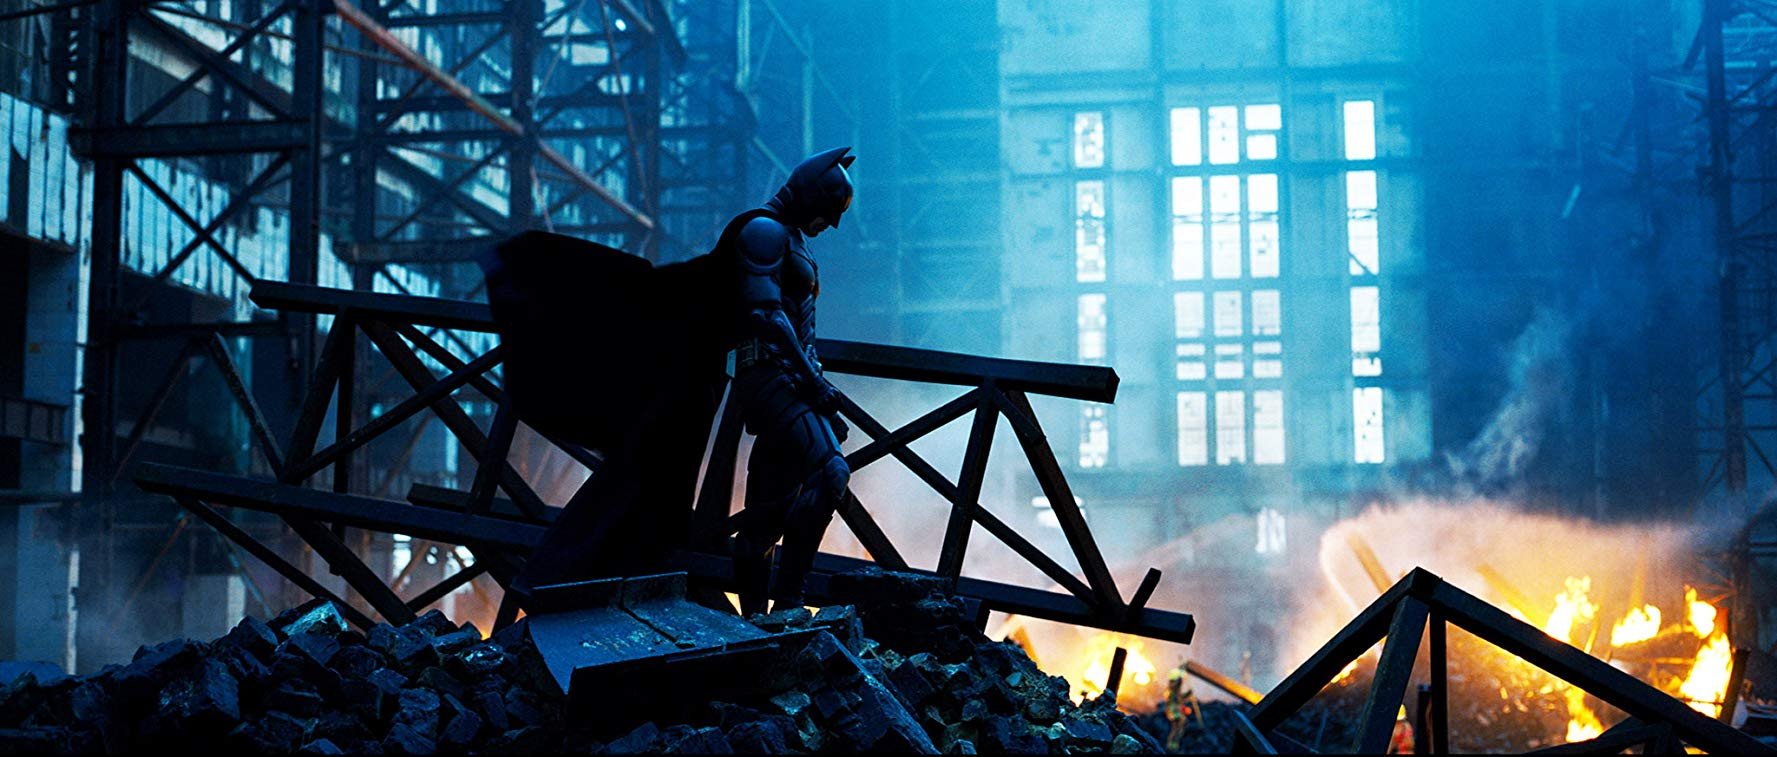 the dark knight, batman